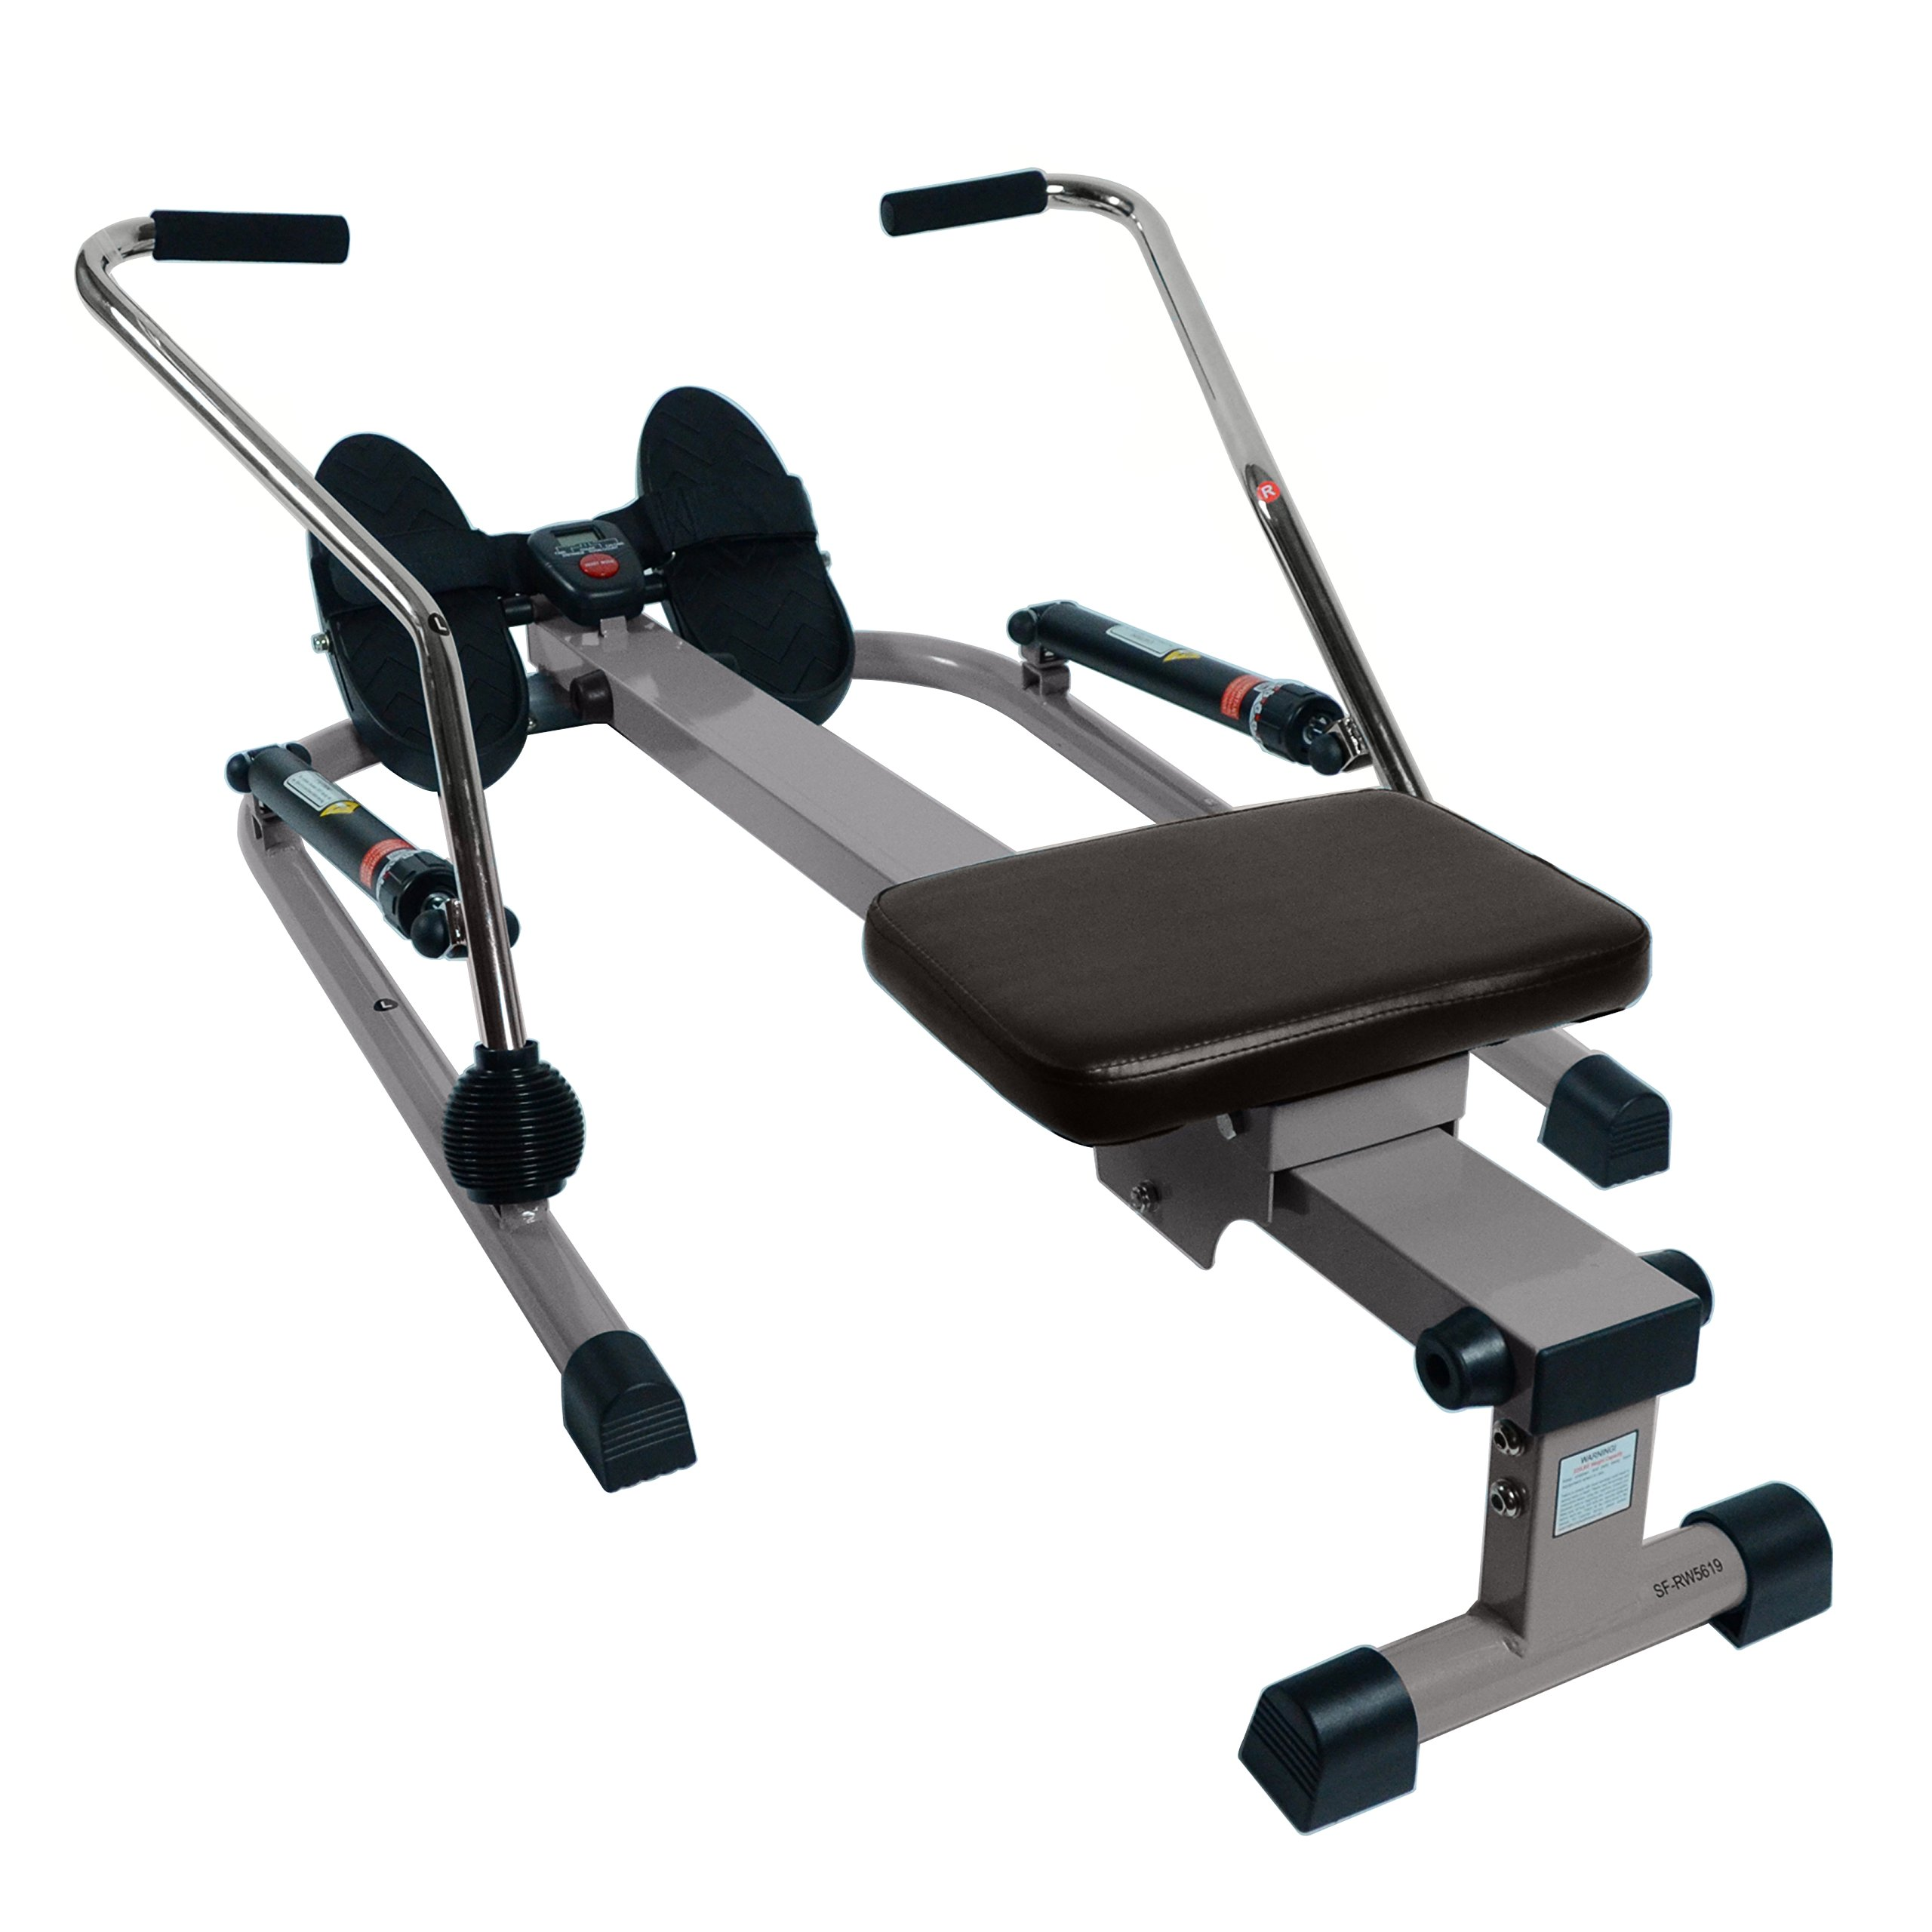 Sunny Health & Fitness SF-RW5619 12 Level Resistance Rowing Machine Rower w/ Independent Arms by Sunny Health & Fitness